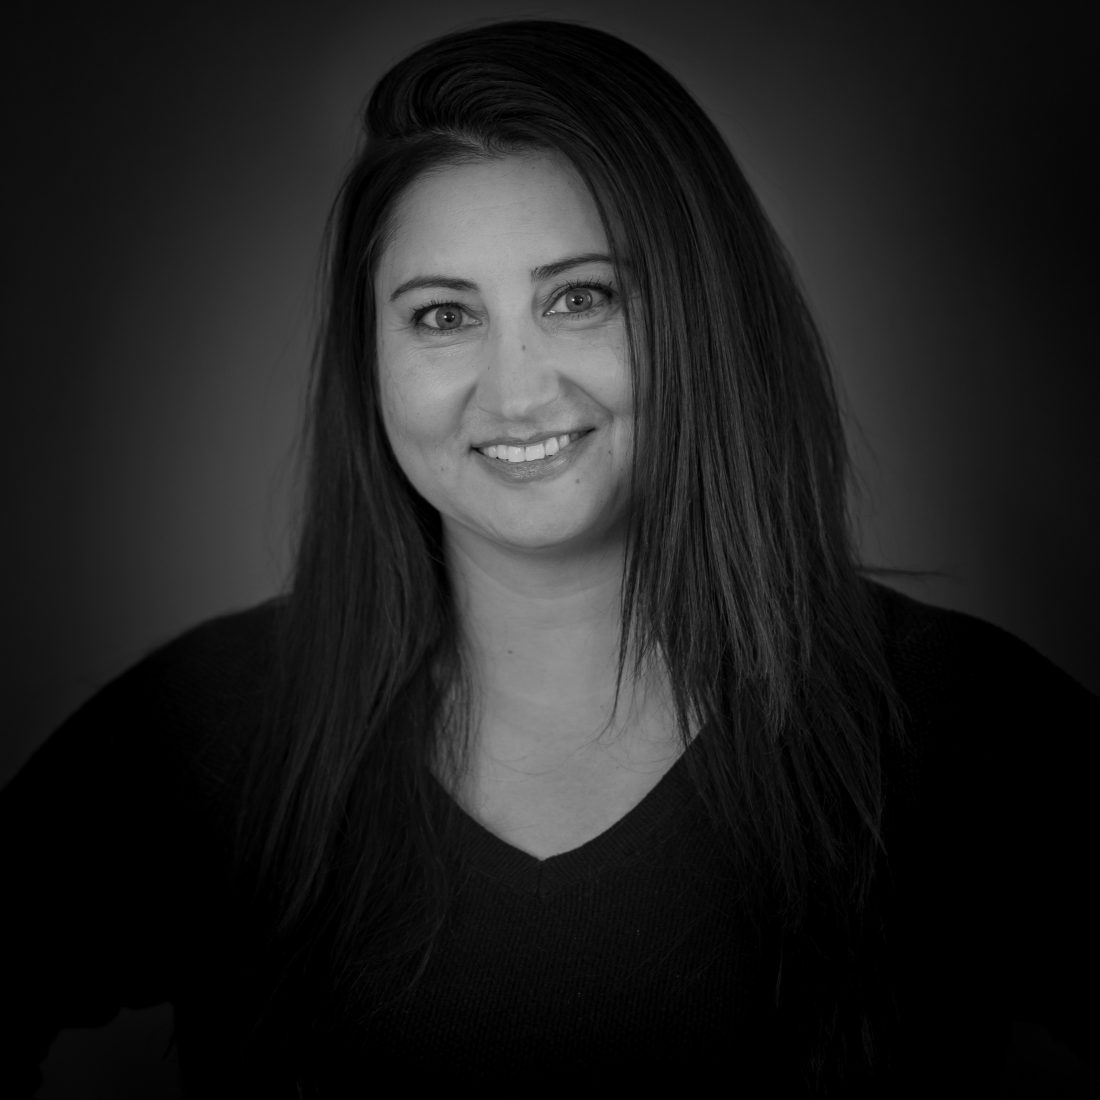 Headshot of Partner and Director of Creative Solutions and Services Michelle Single